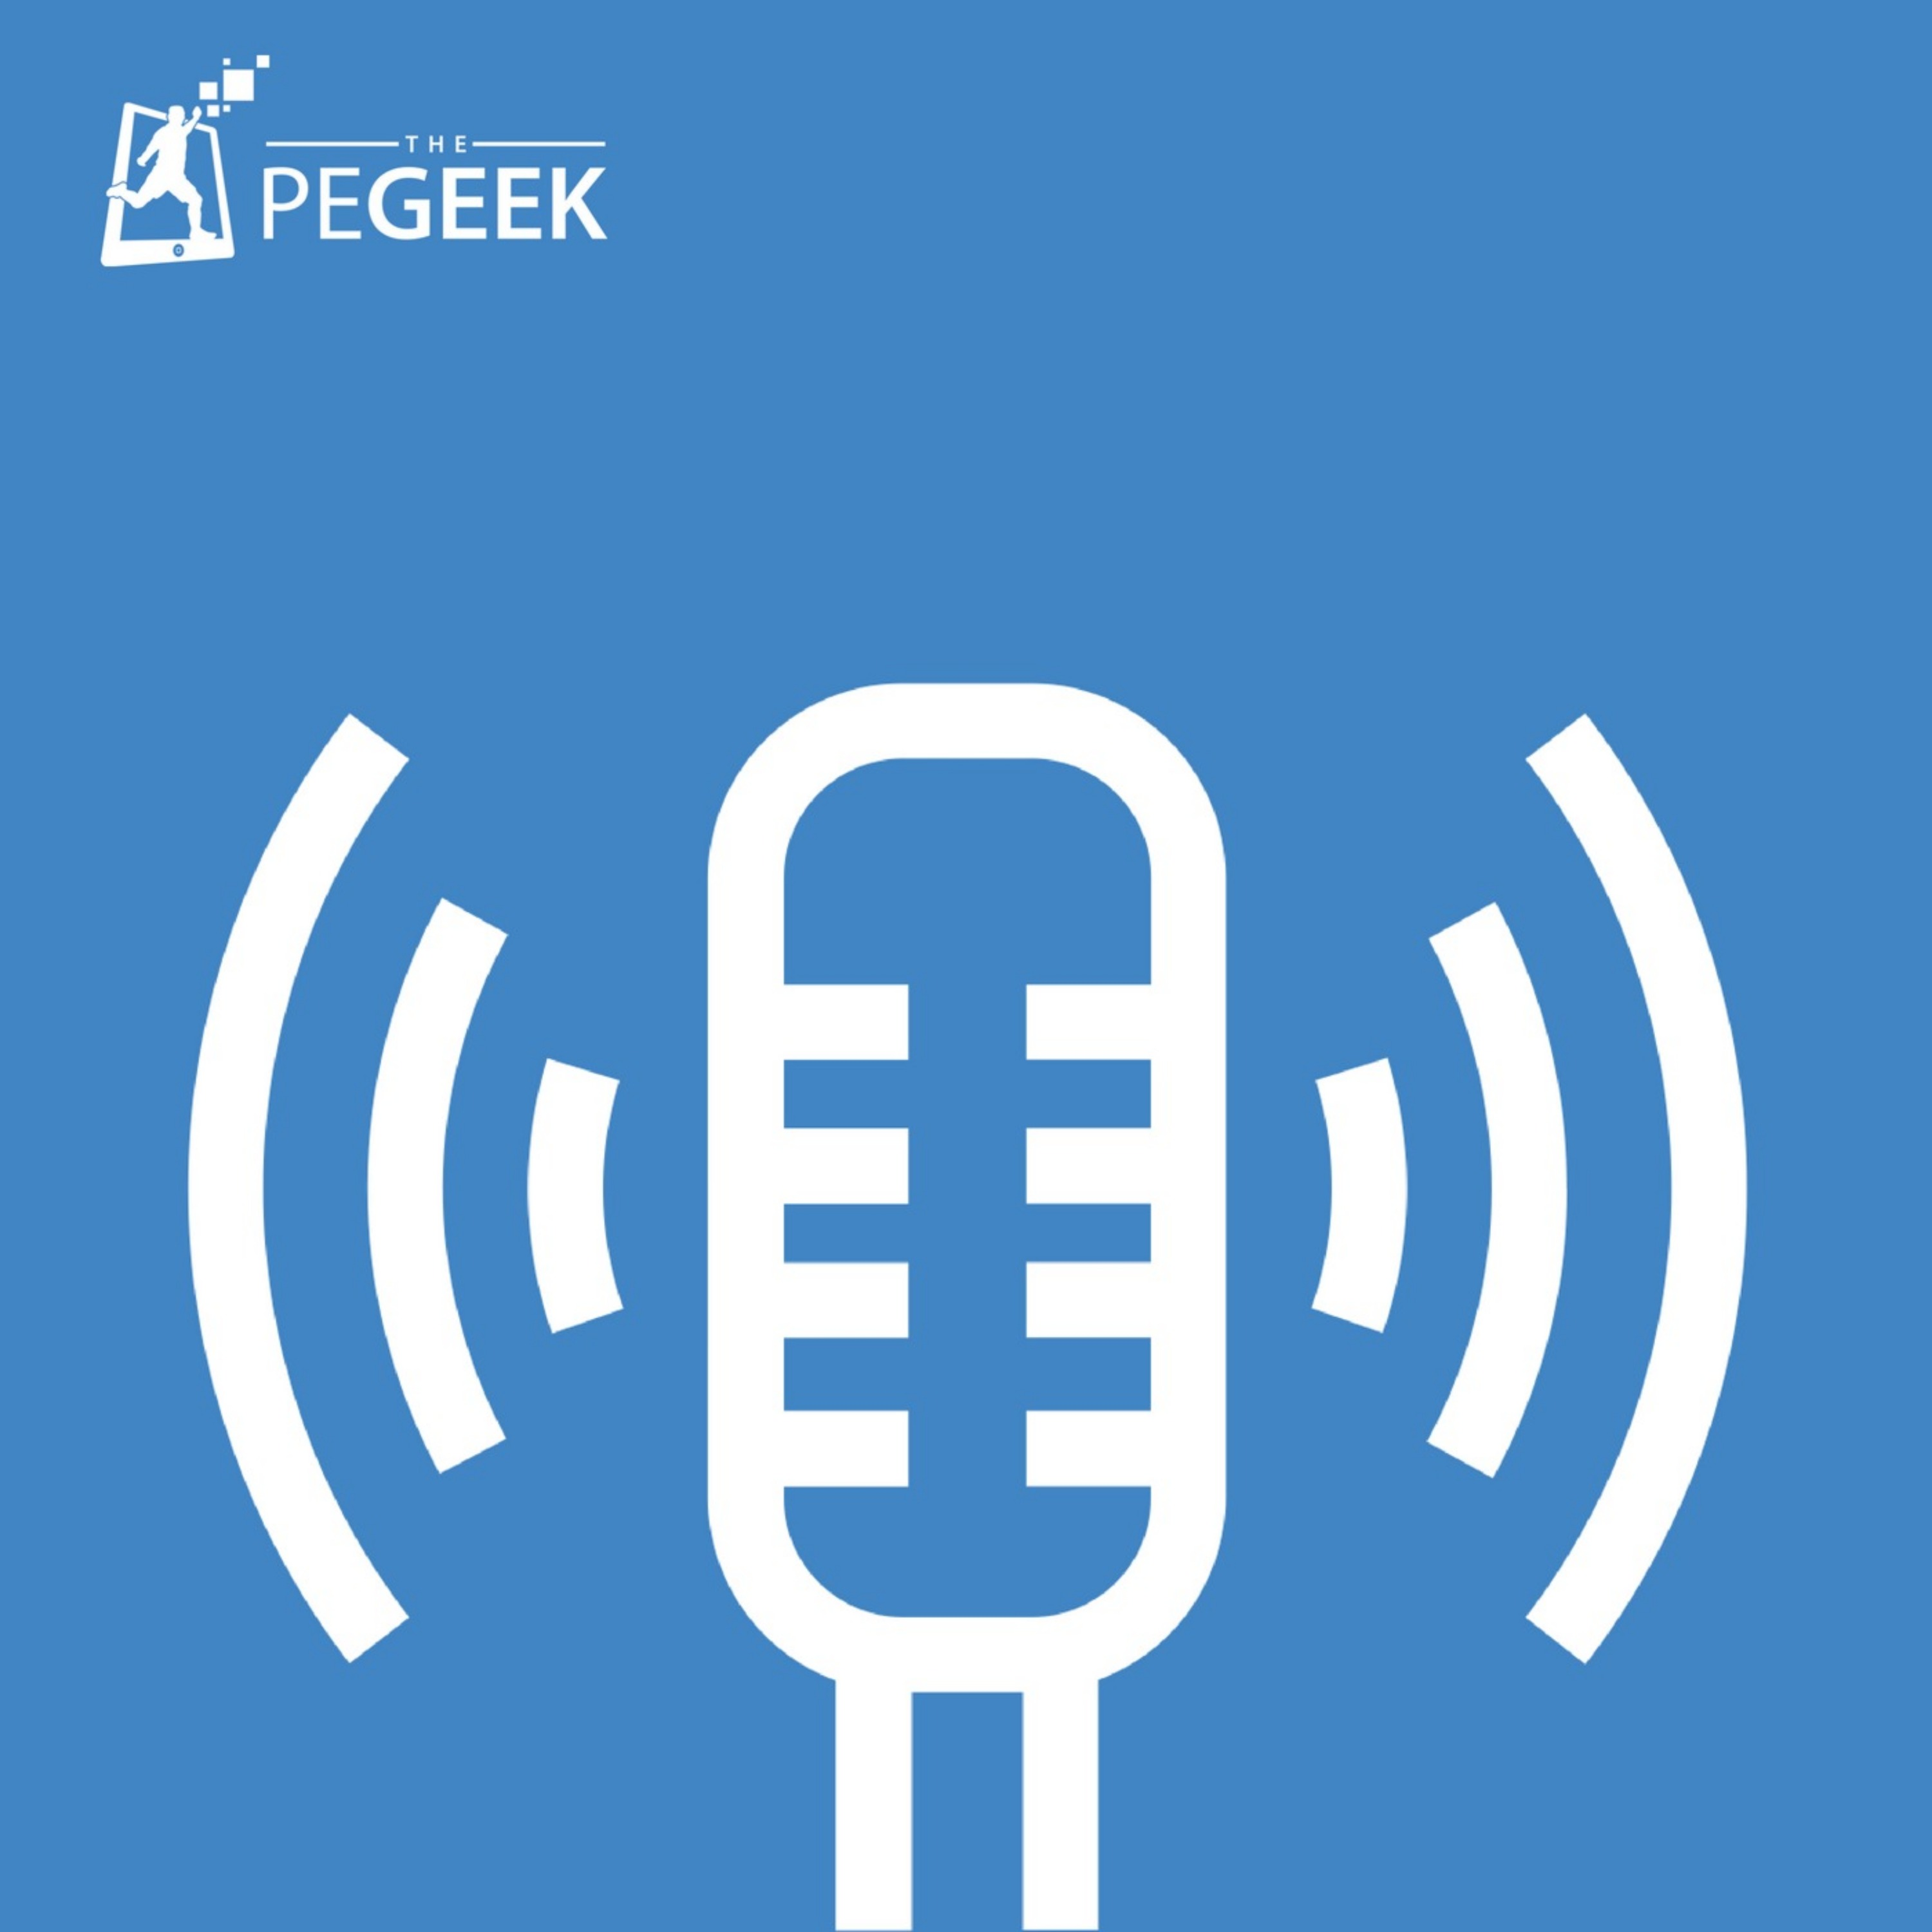 The PE Geek Podcast